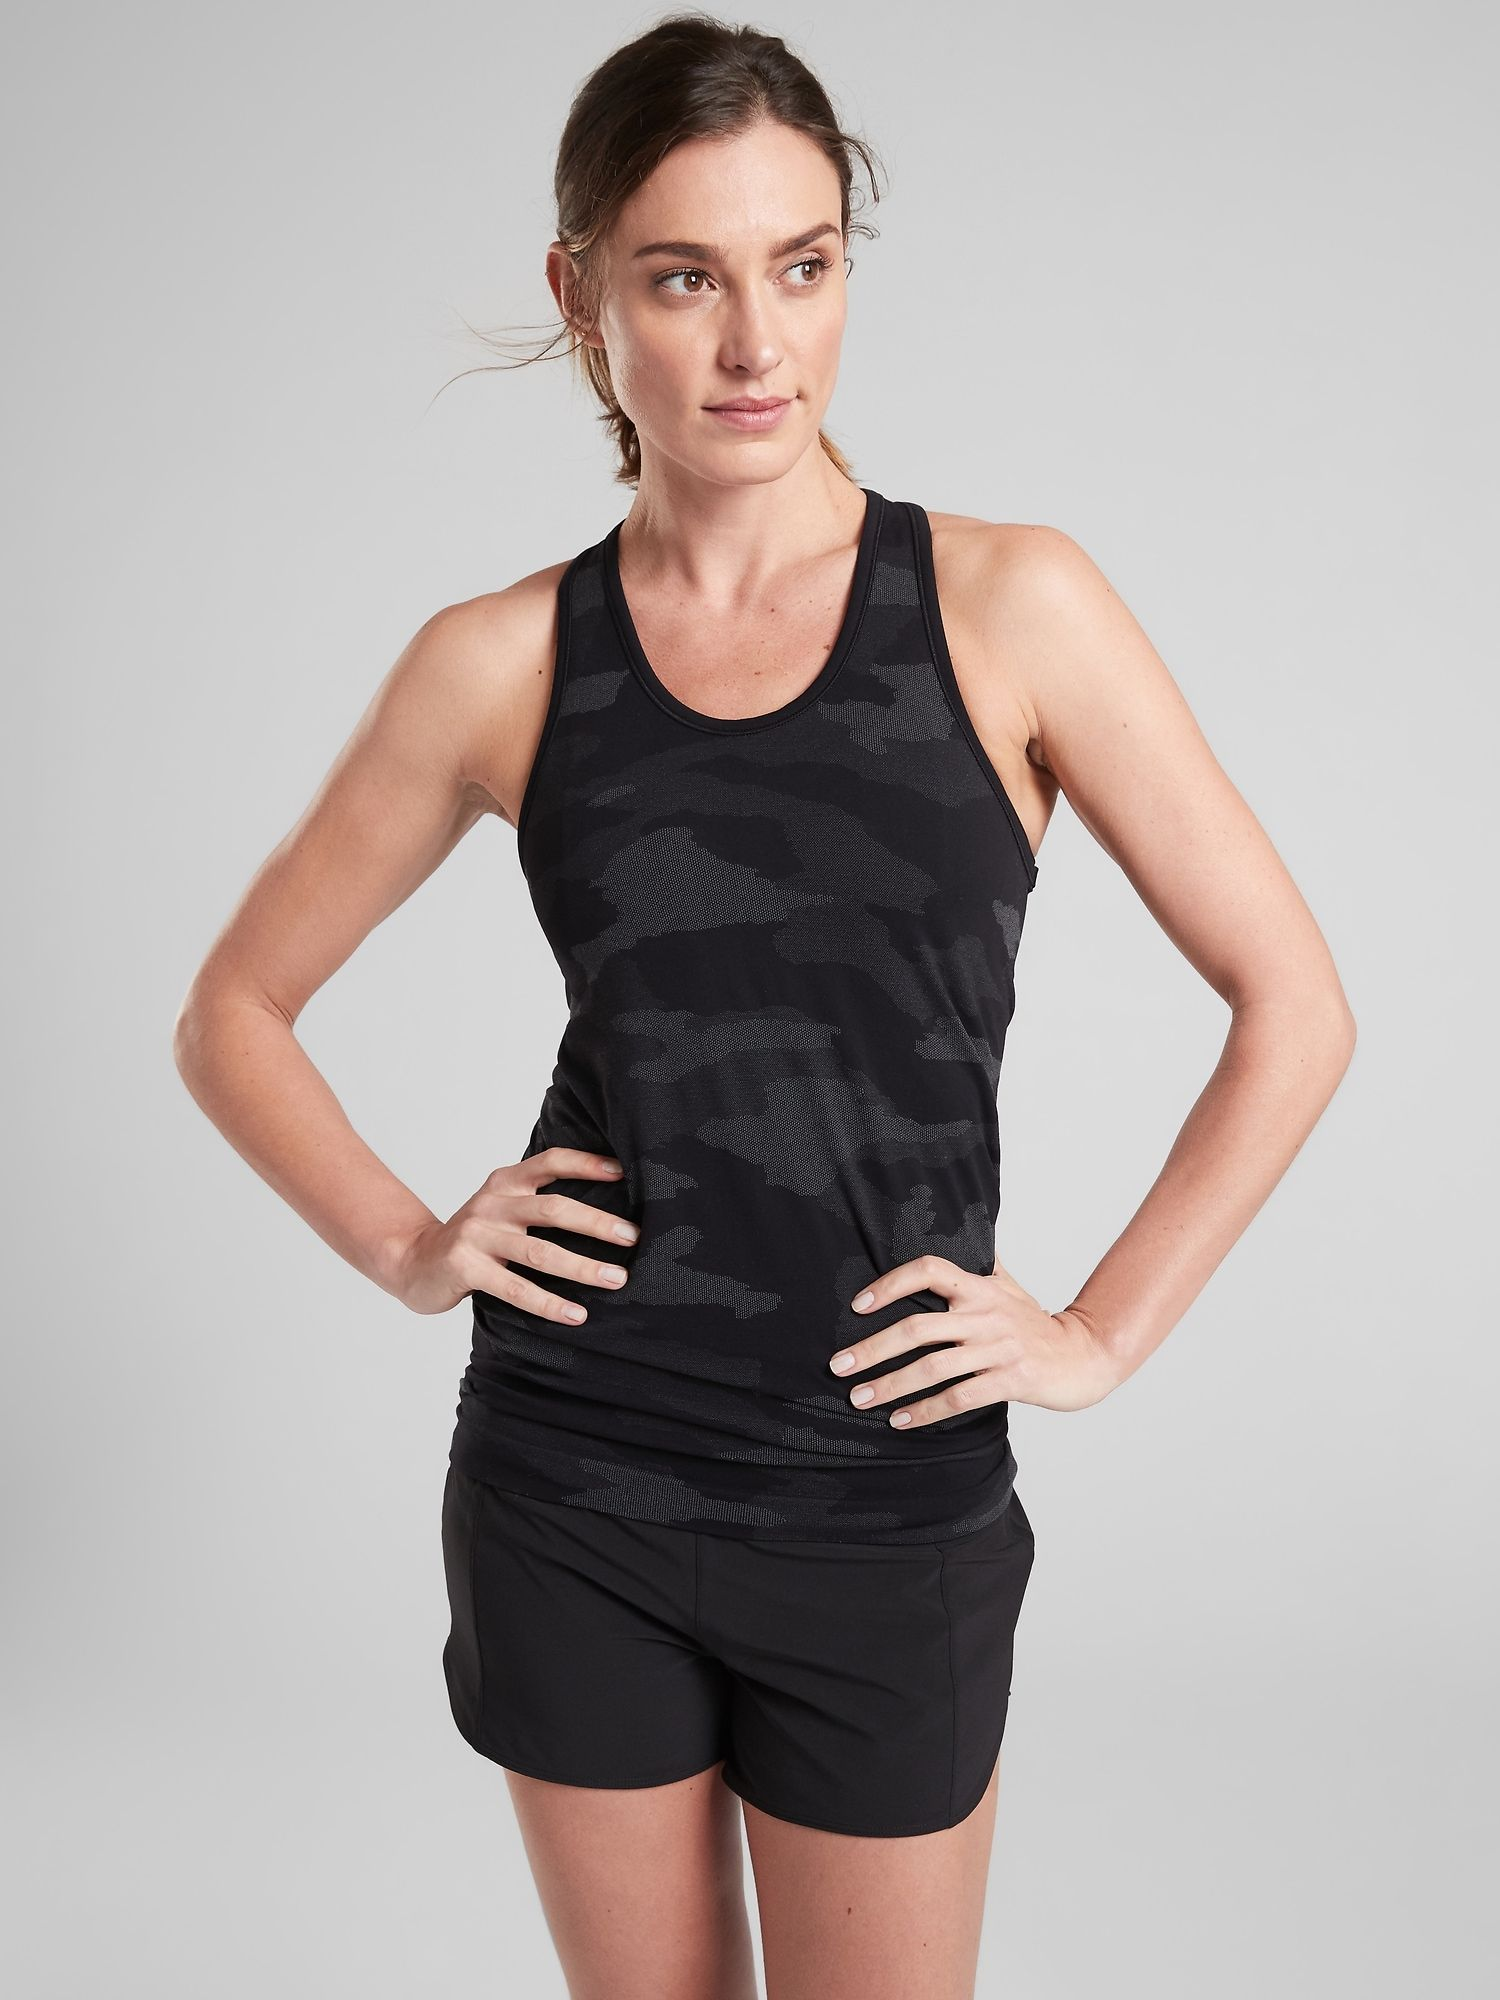 eee37f849c1f2 Speedlight Camo Tank in 2019 | sports wishlist | Workout tops for ...